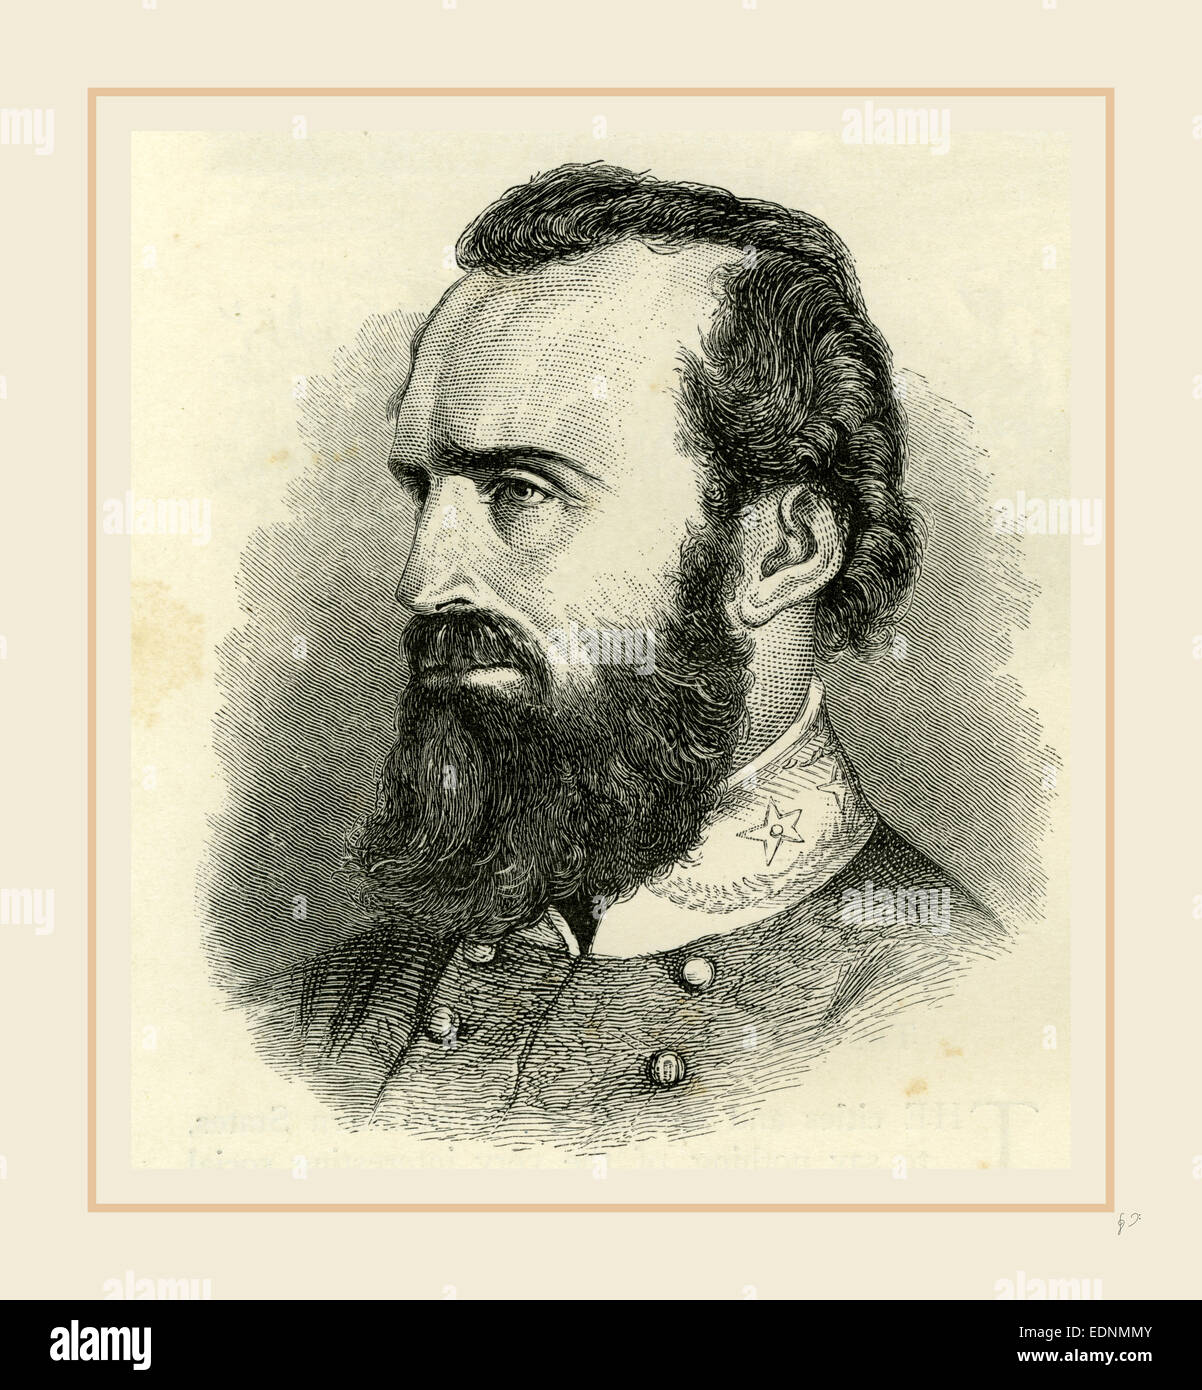 Stonewall Jackson, USA 19th Century, America - Stock Image